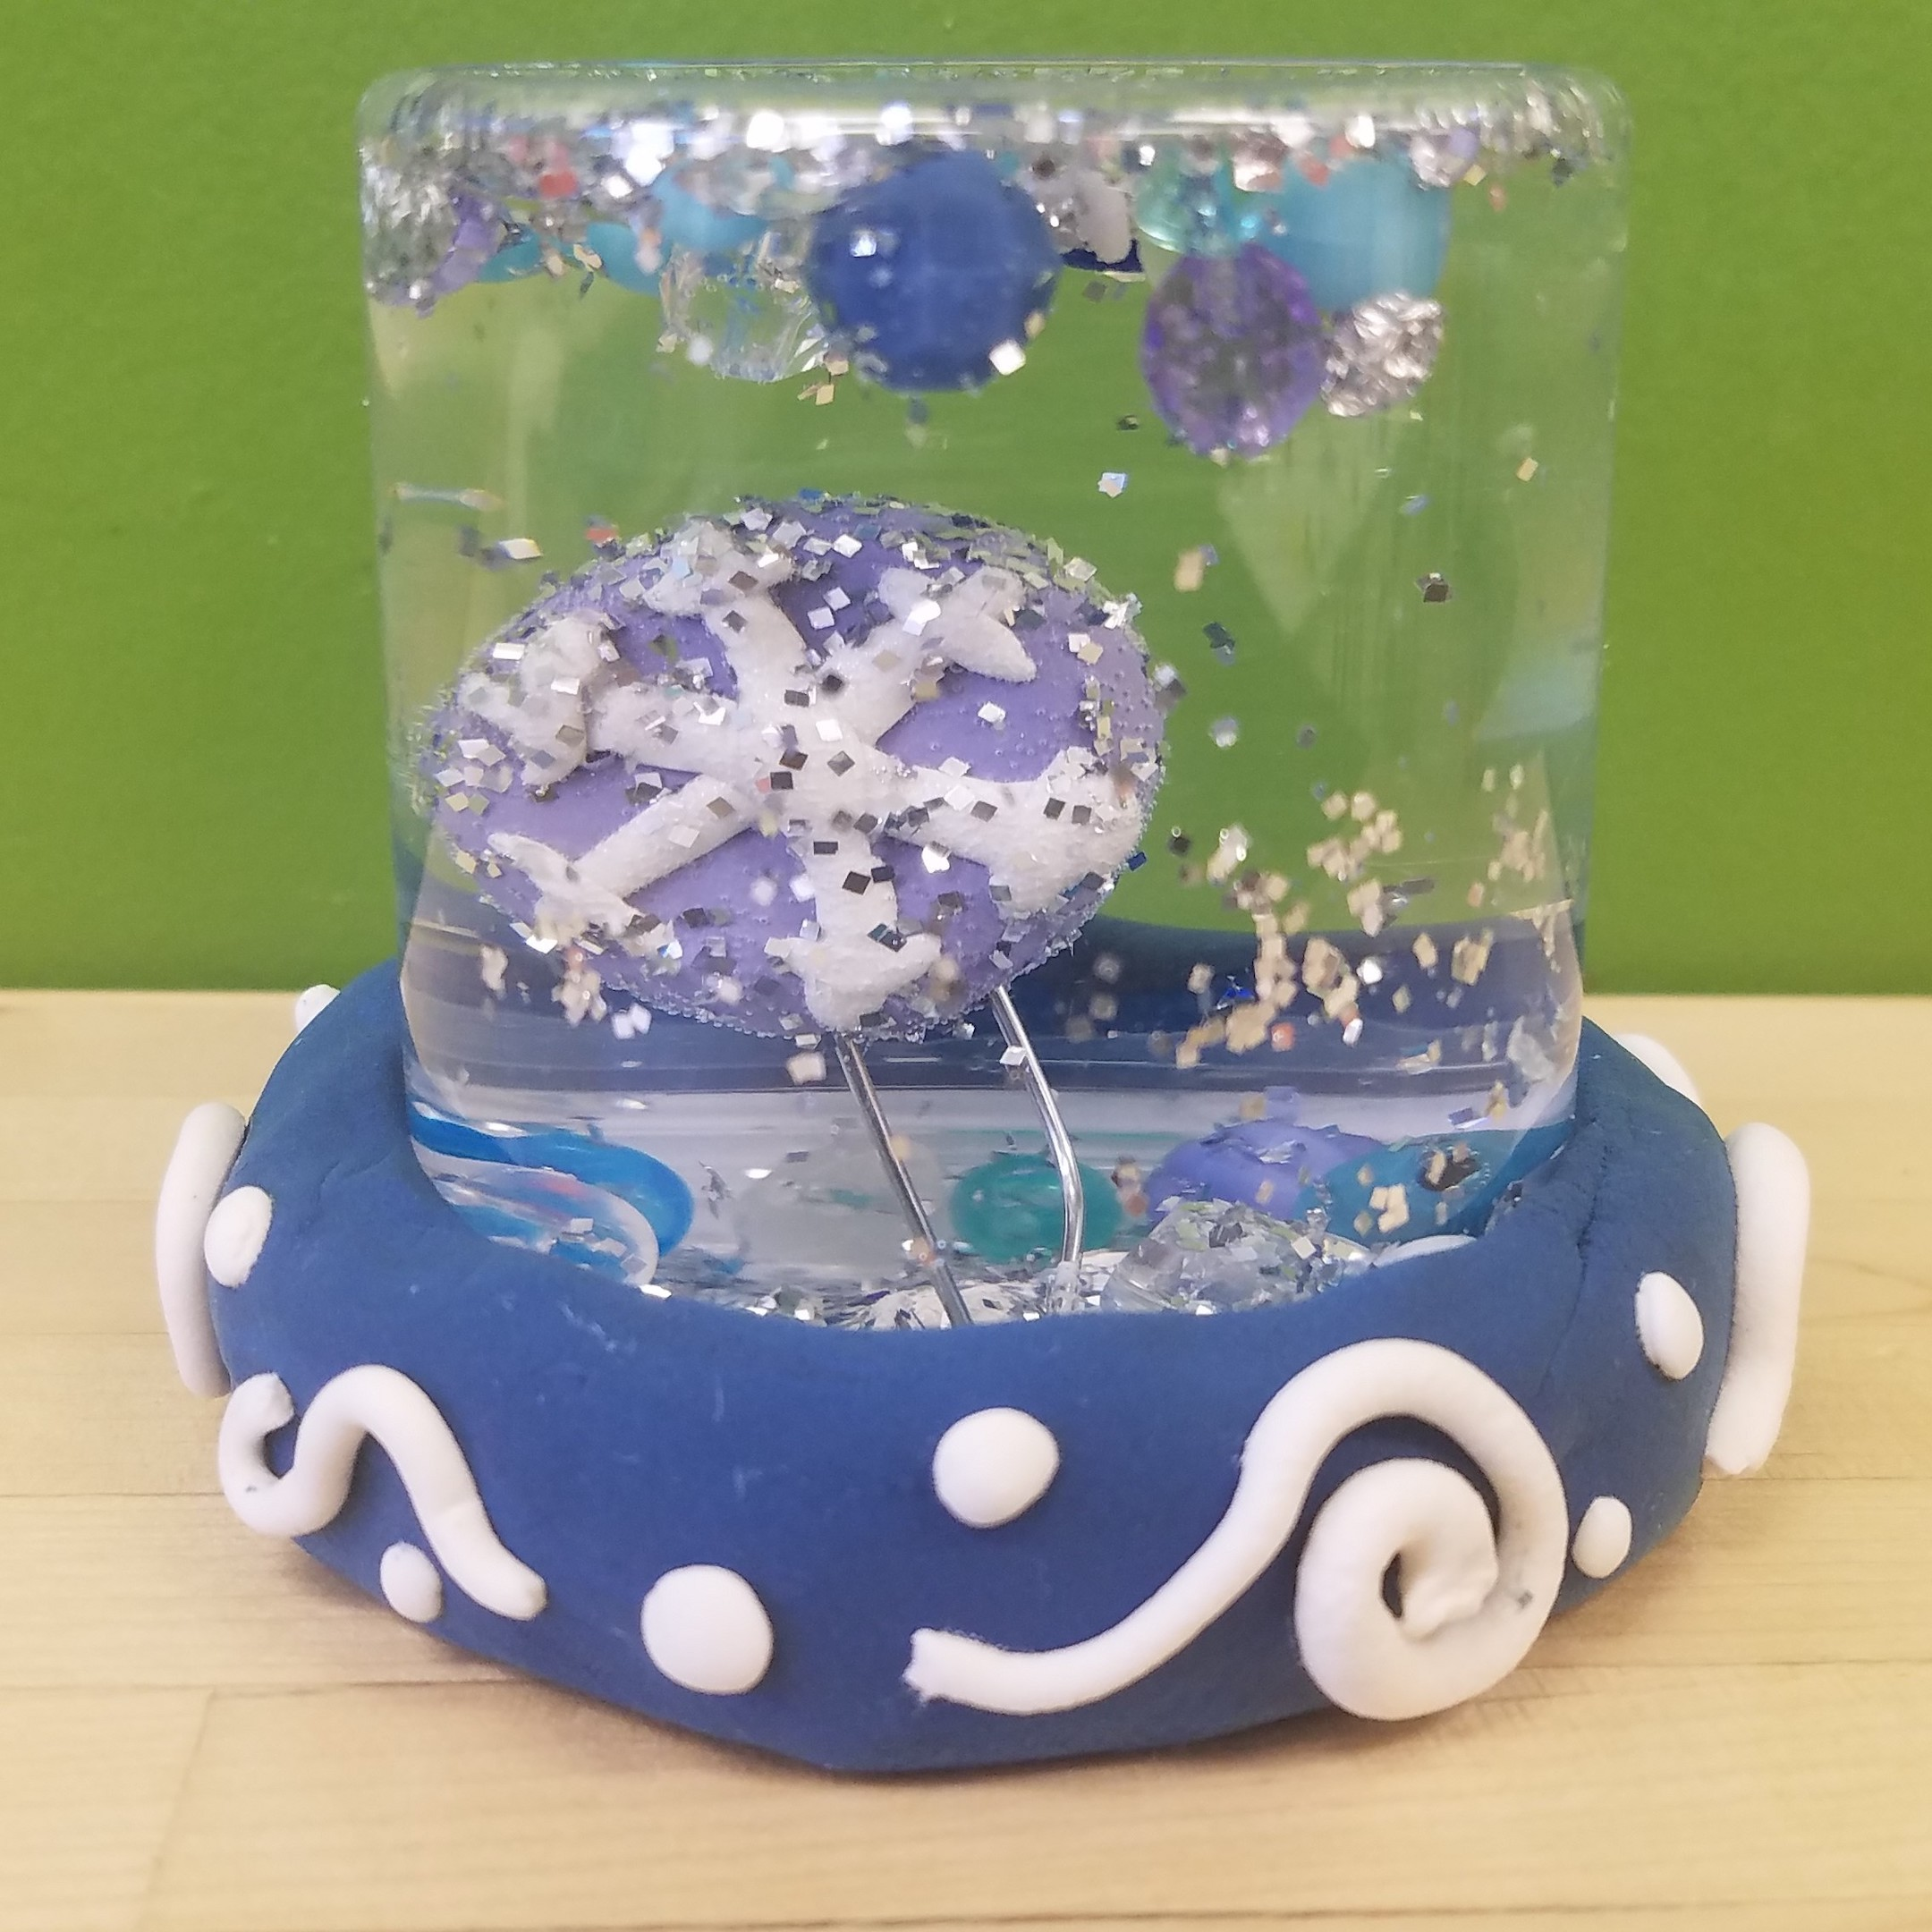 Kidcreate Studio, How to Make a Snow Globe Art Project